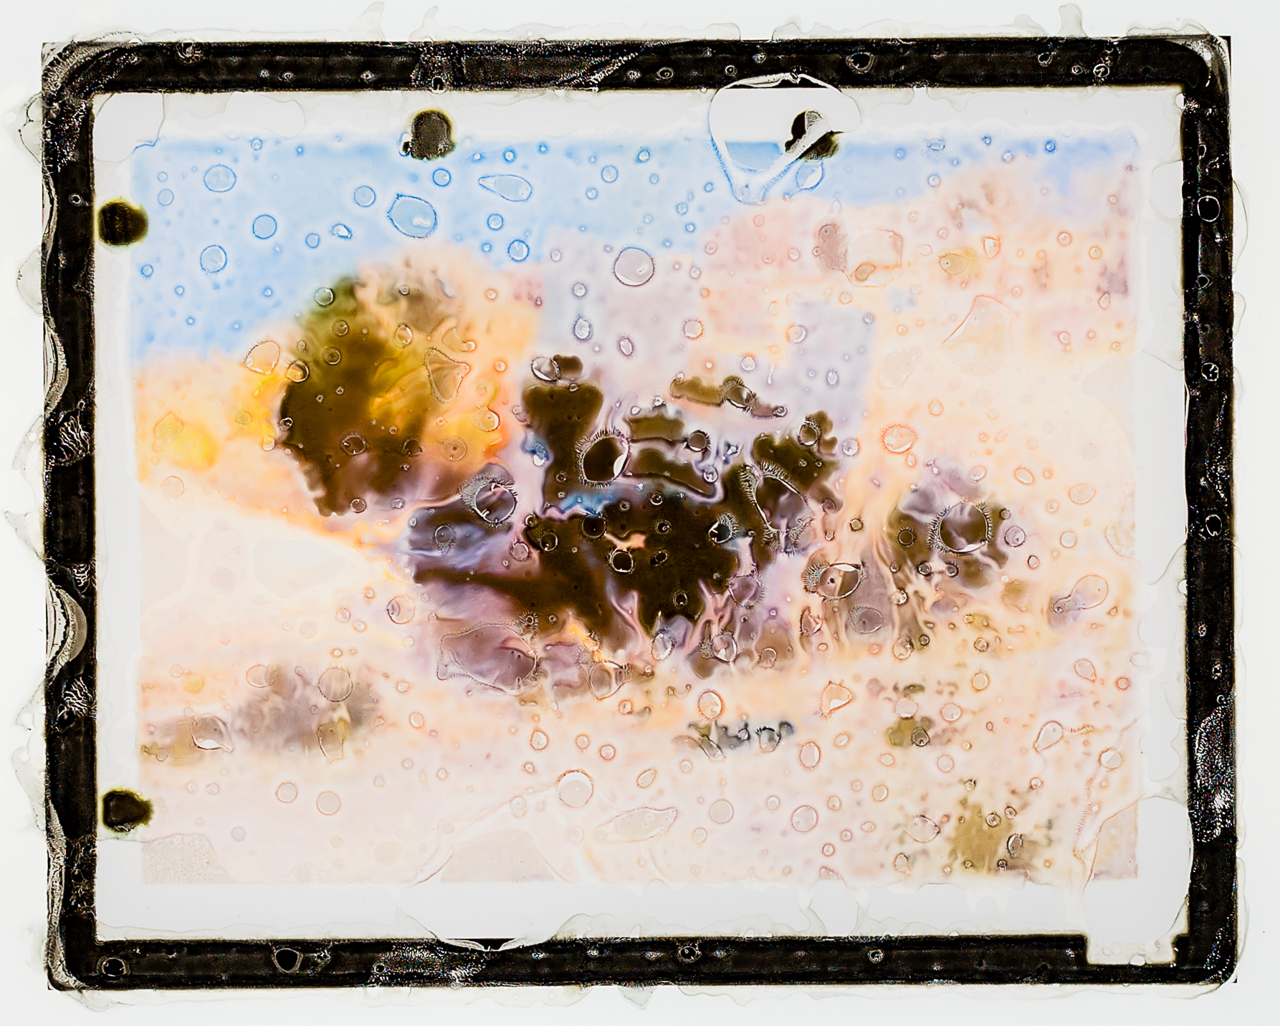 Humvee. Haditha, Iraq. November 19, 2005 [312133 JAN 13 Misprint], 2013. Inkjet monoprint transparency in lightbox, 8 x 10 1/2 inches. Note: The problems of reference and truth are addressed in the titling convention. There, I reconsider referentiality to an event through rupture. Photographs record an event, Misprints produce very unstable images. Each work corresponds to a specific  time and space, with a unique set of irreversible  circumstances.